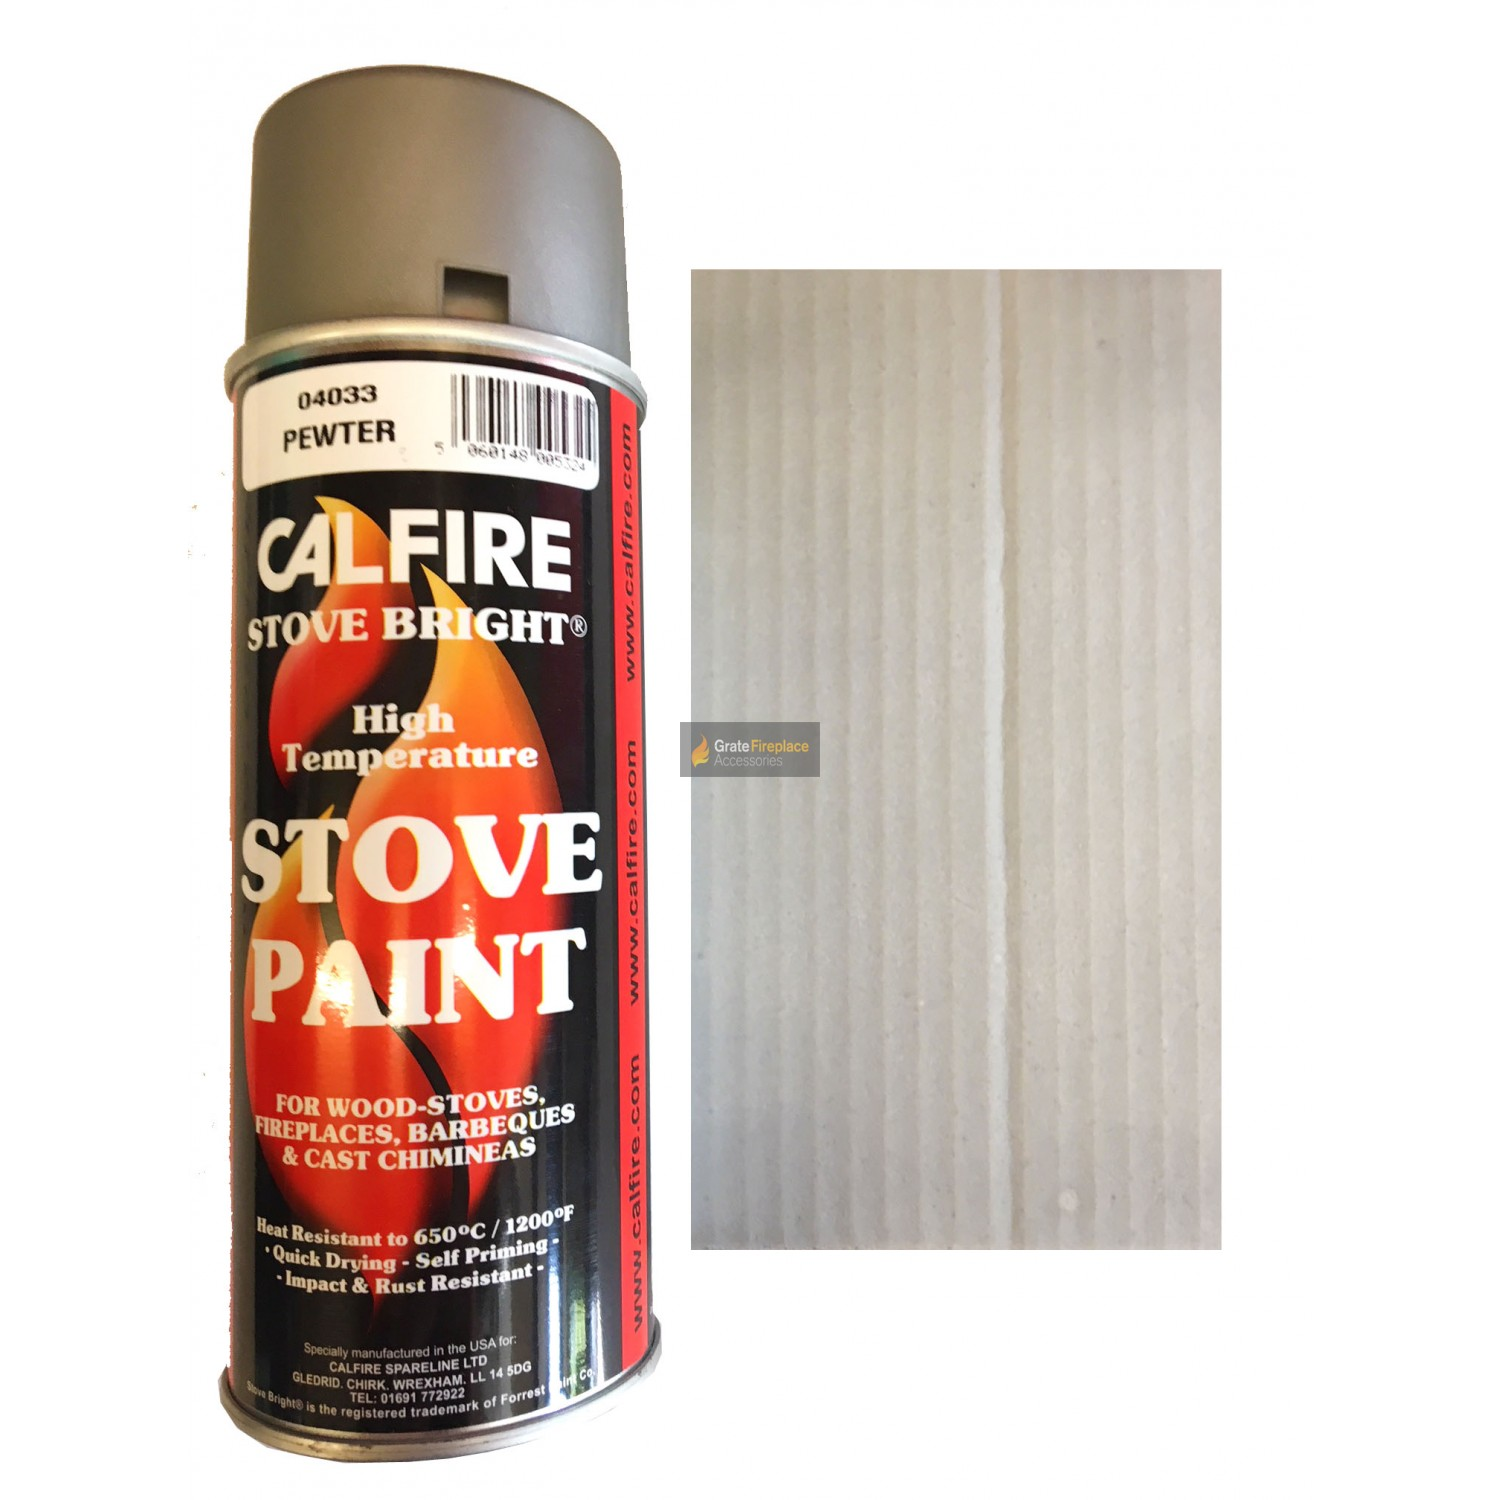 Stovebright High Temperature Paint